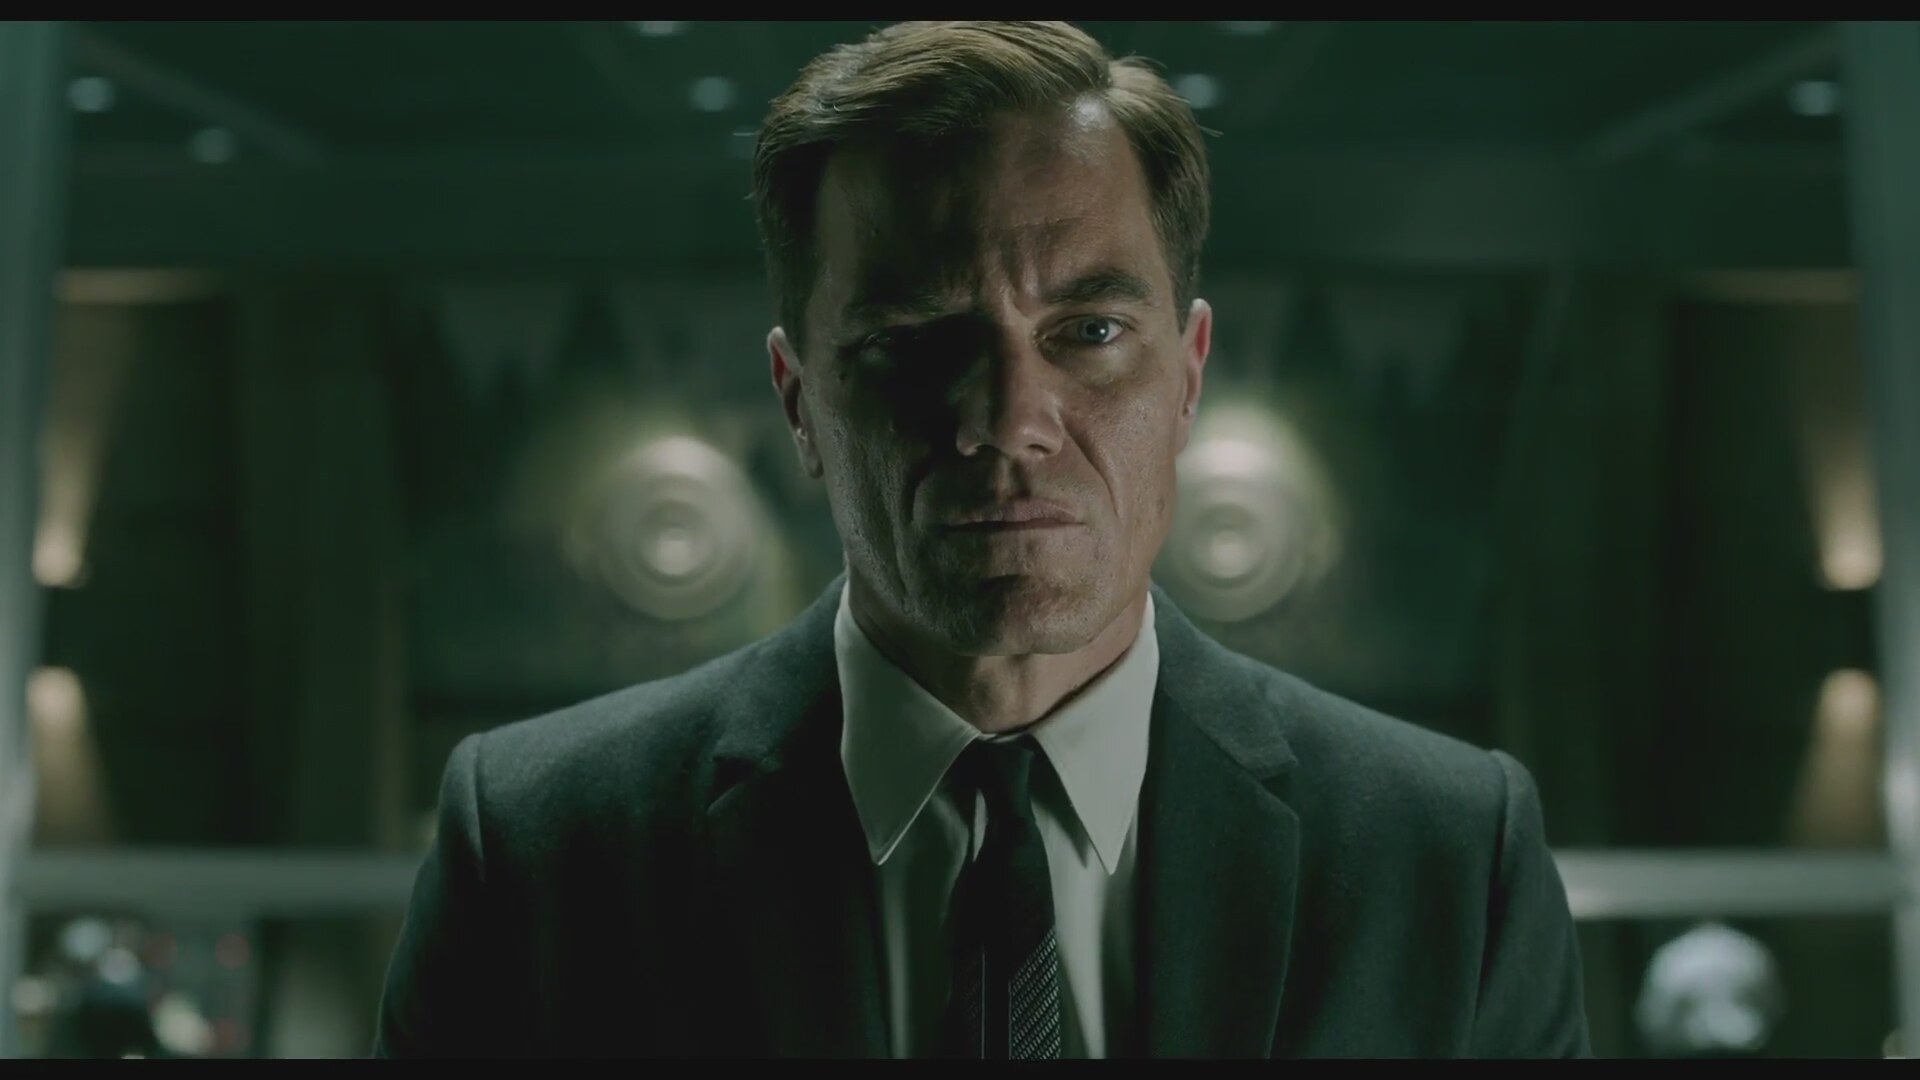 shape of water michael shannon cultural hater